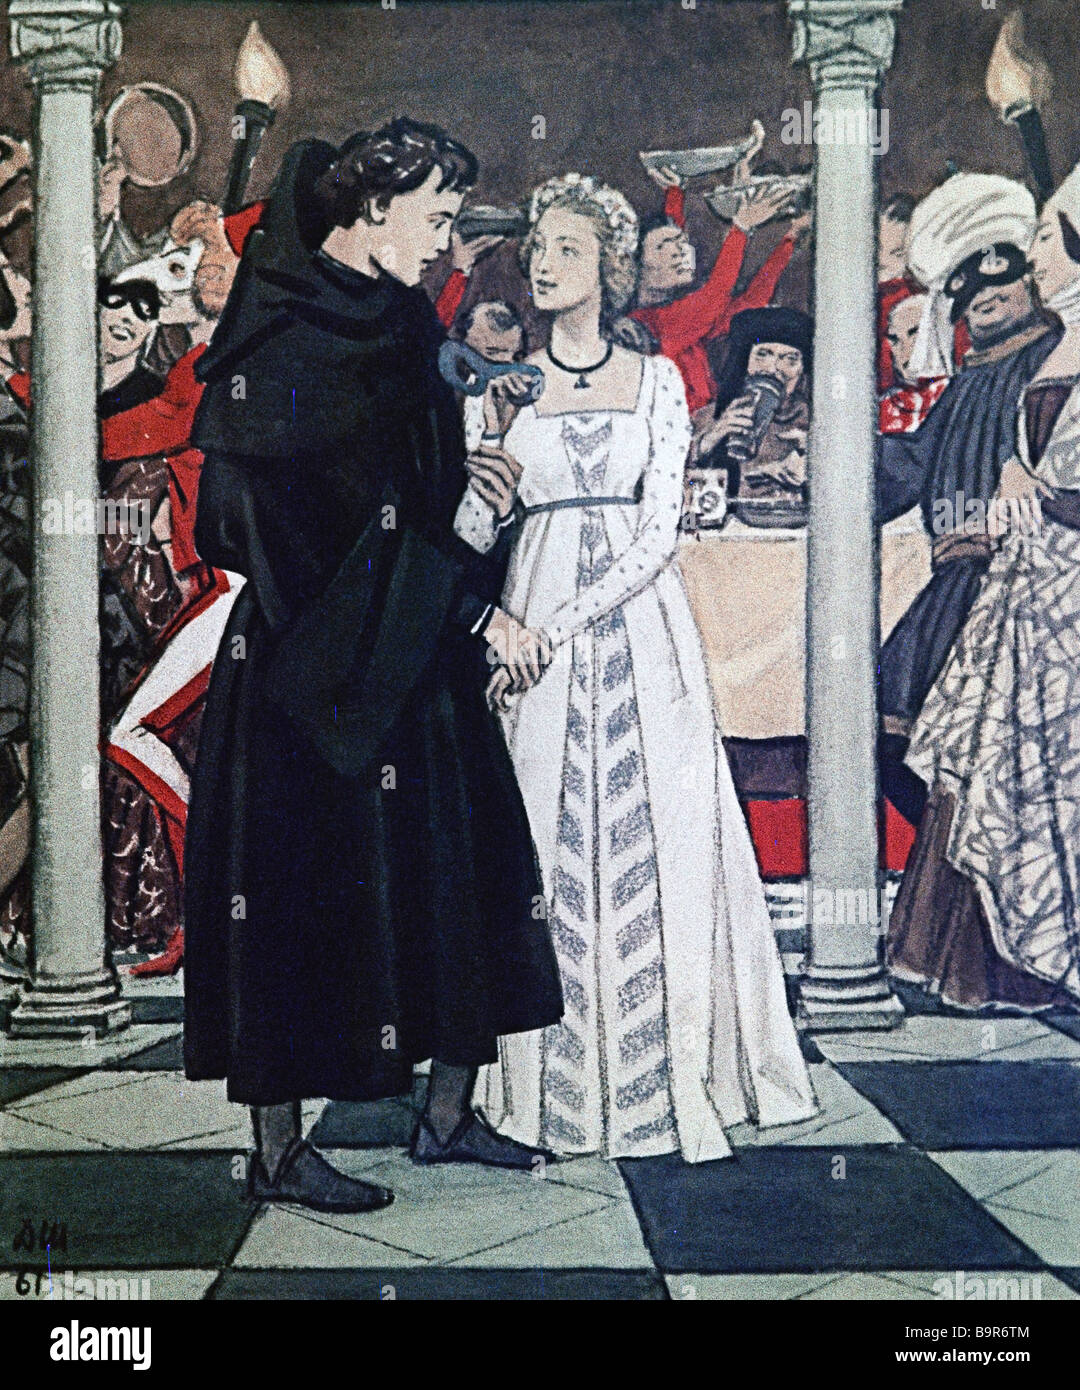 Shmarinov 1907 1999 Capuletti Festival Illustration to Shakespear s tragedy Romeo and Juliet - Stock Image